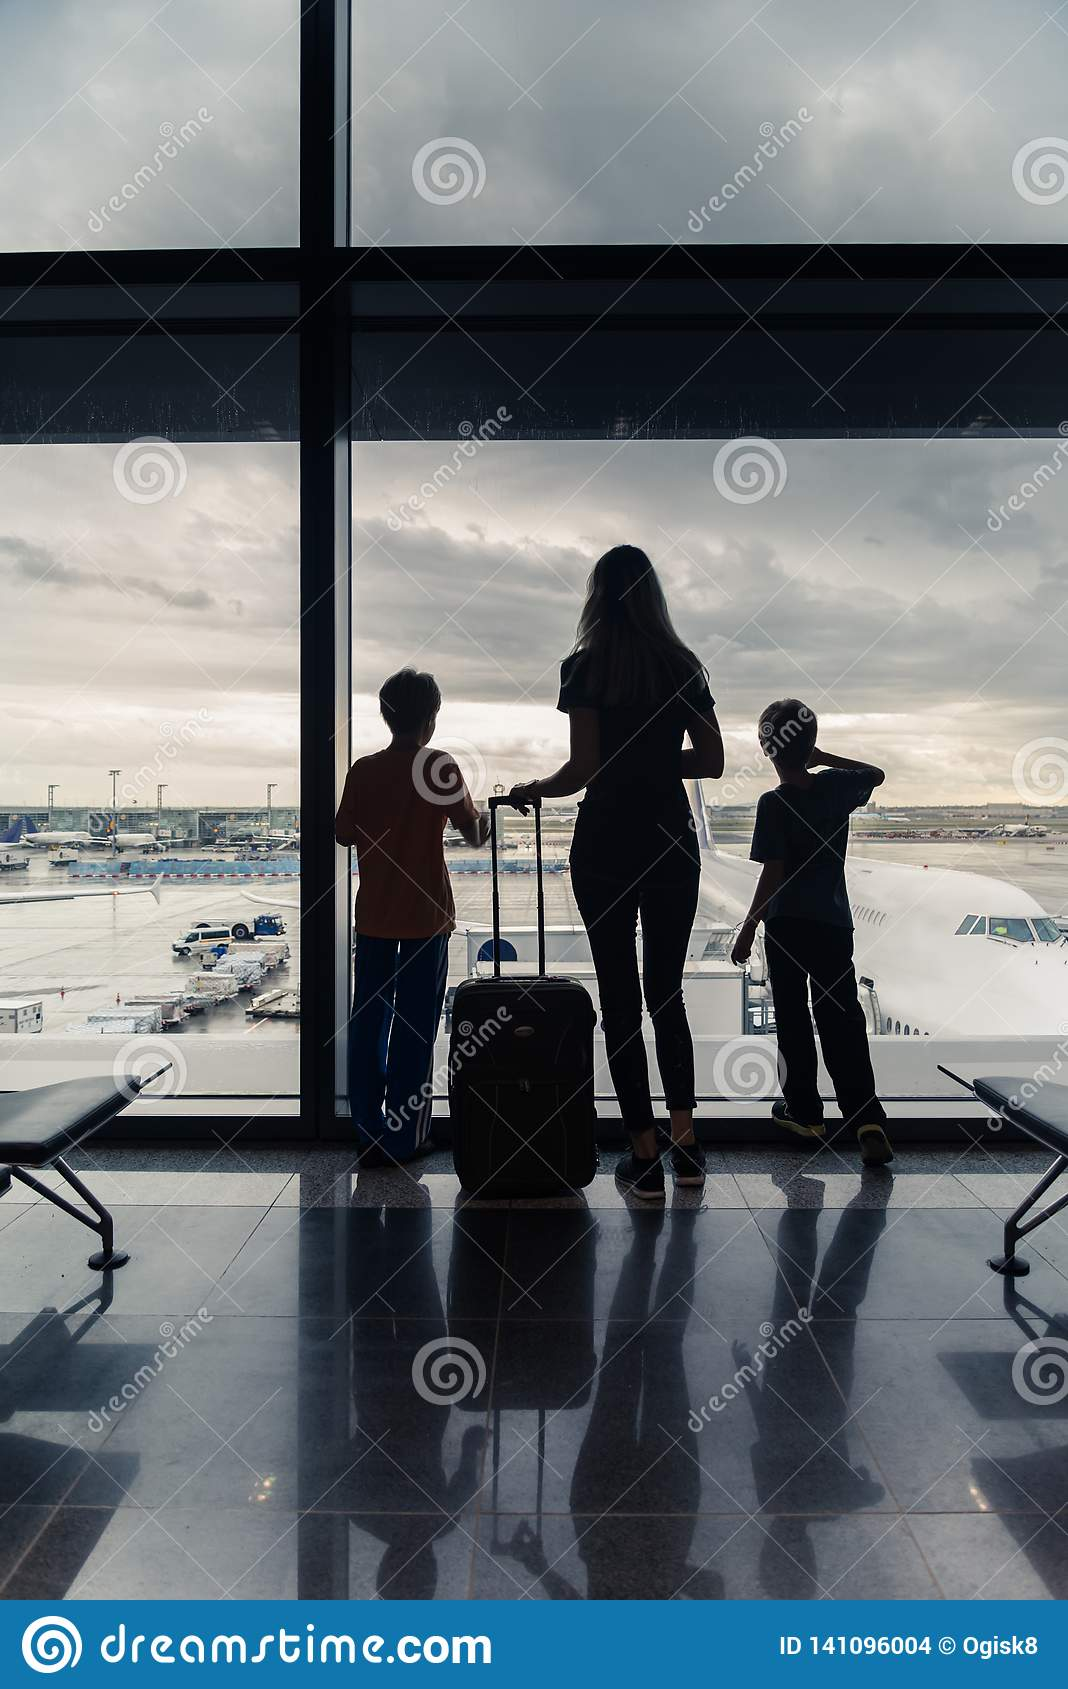 Silhouettes of mom with kids in terminal waiting for flight